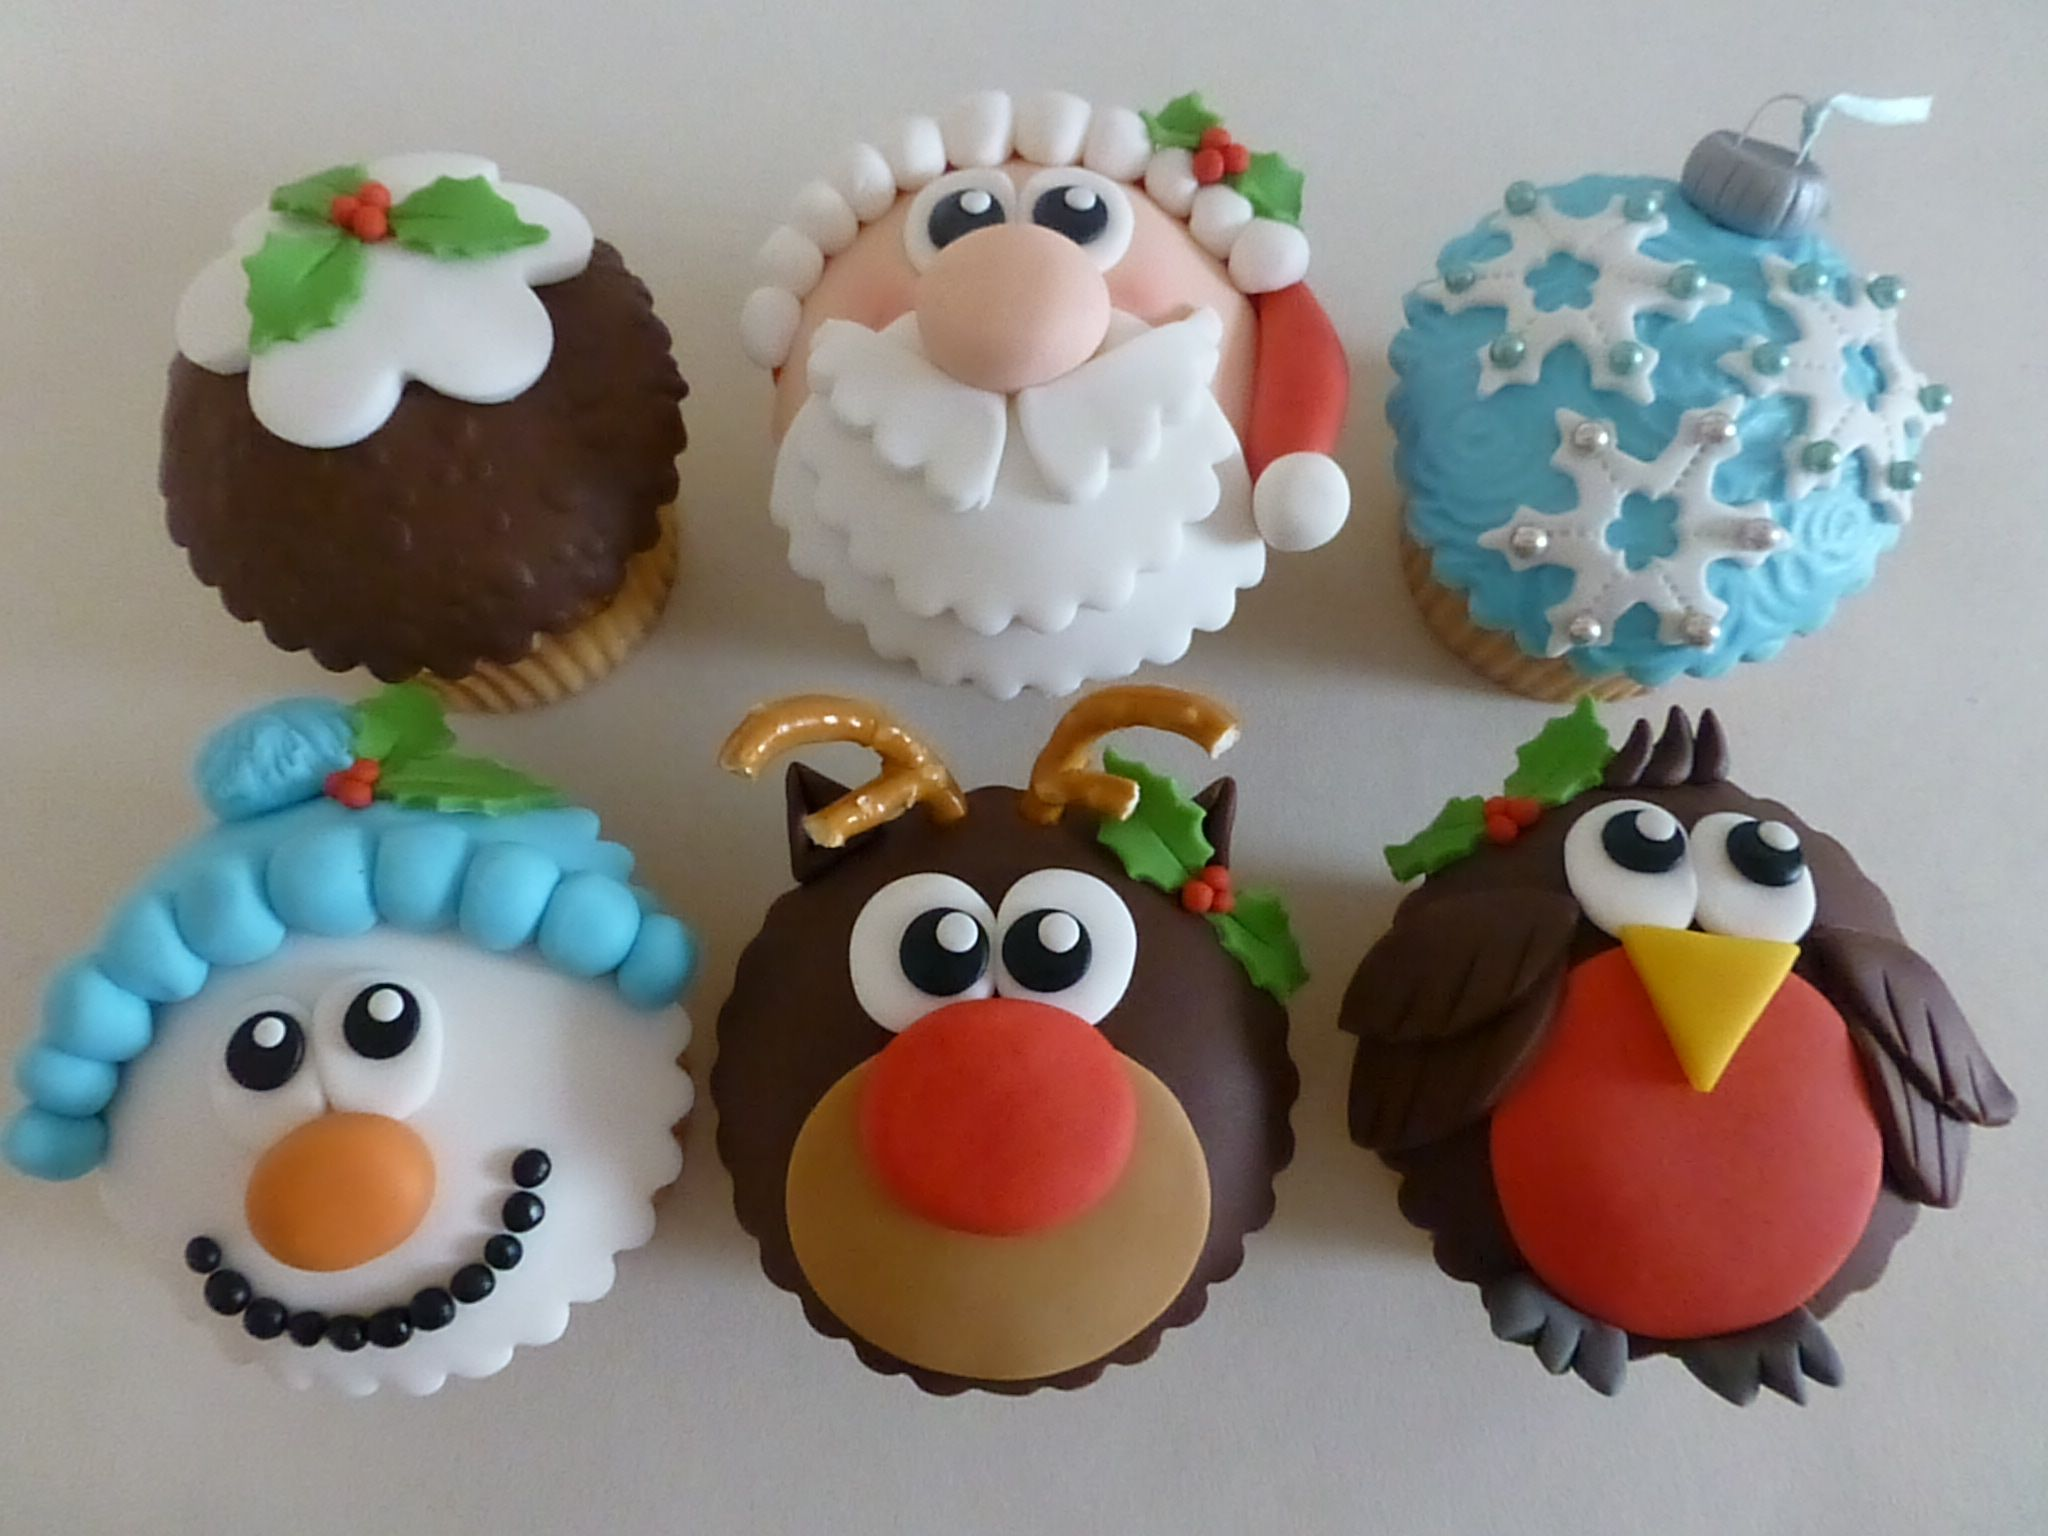 Christmas Cupcake Decorations : 11 Cute Christmas Cupcakes Cake, Cup cakes and Christmas ...